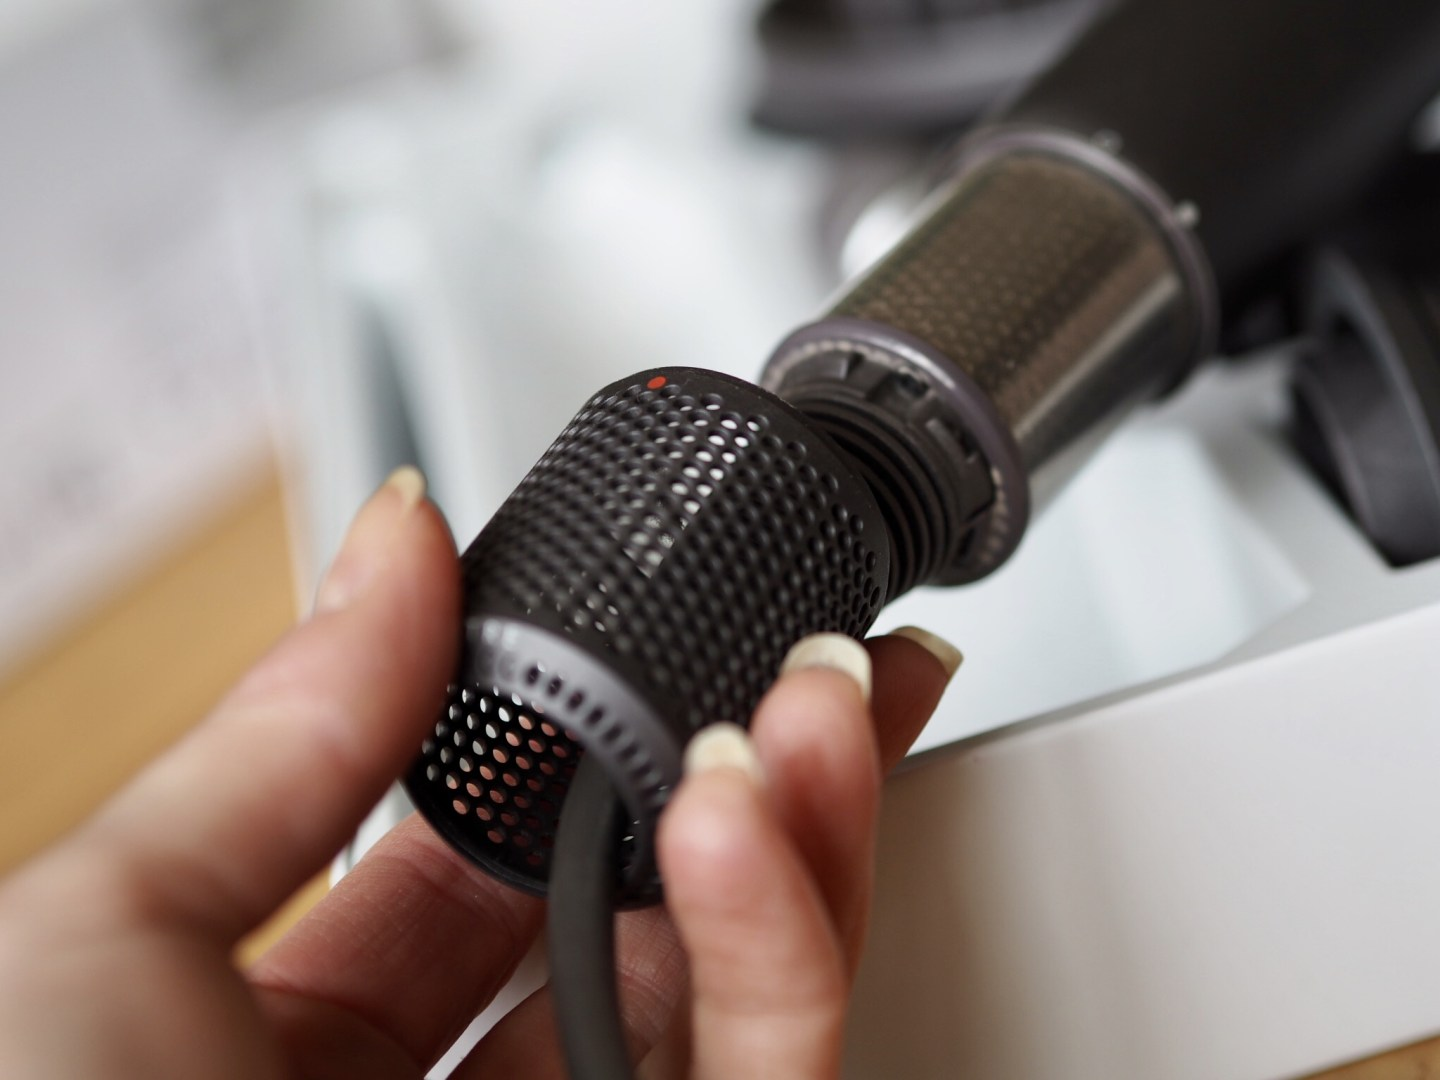 Dyson Supersonic Hairdryer review The Beauty Spyglass